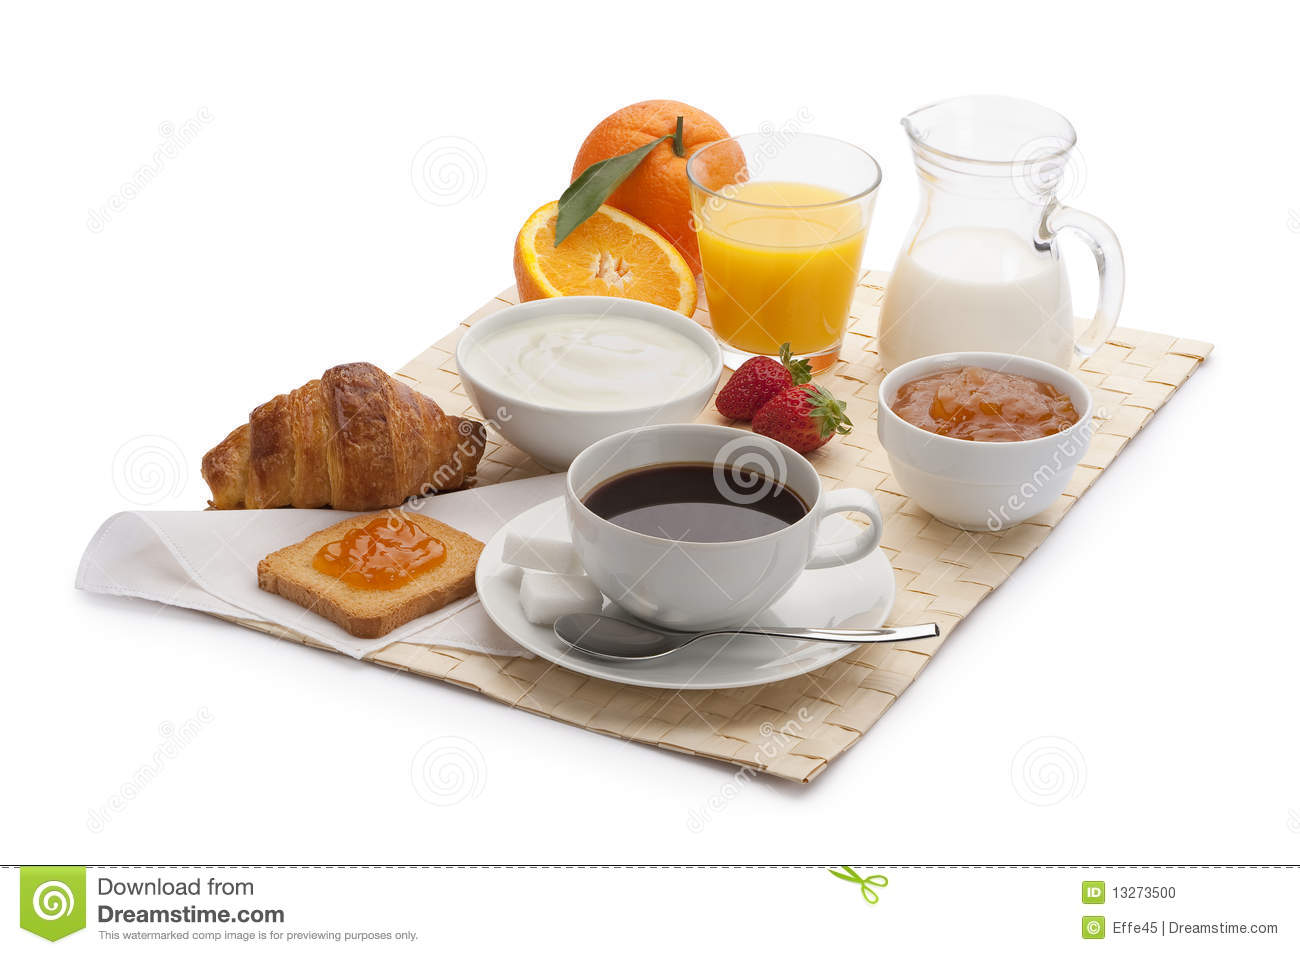 Continental breakfast with orange juice,strawberries, and a croissant.